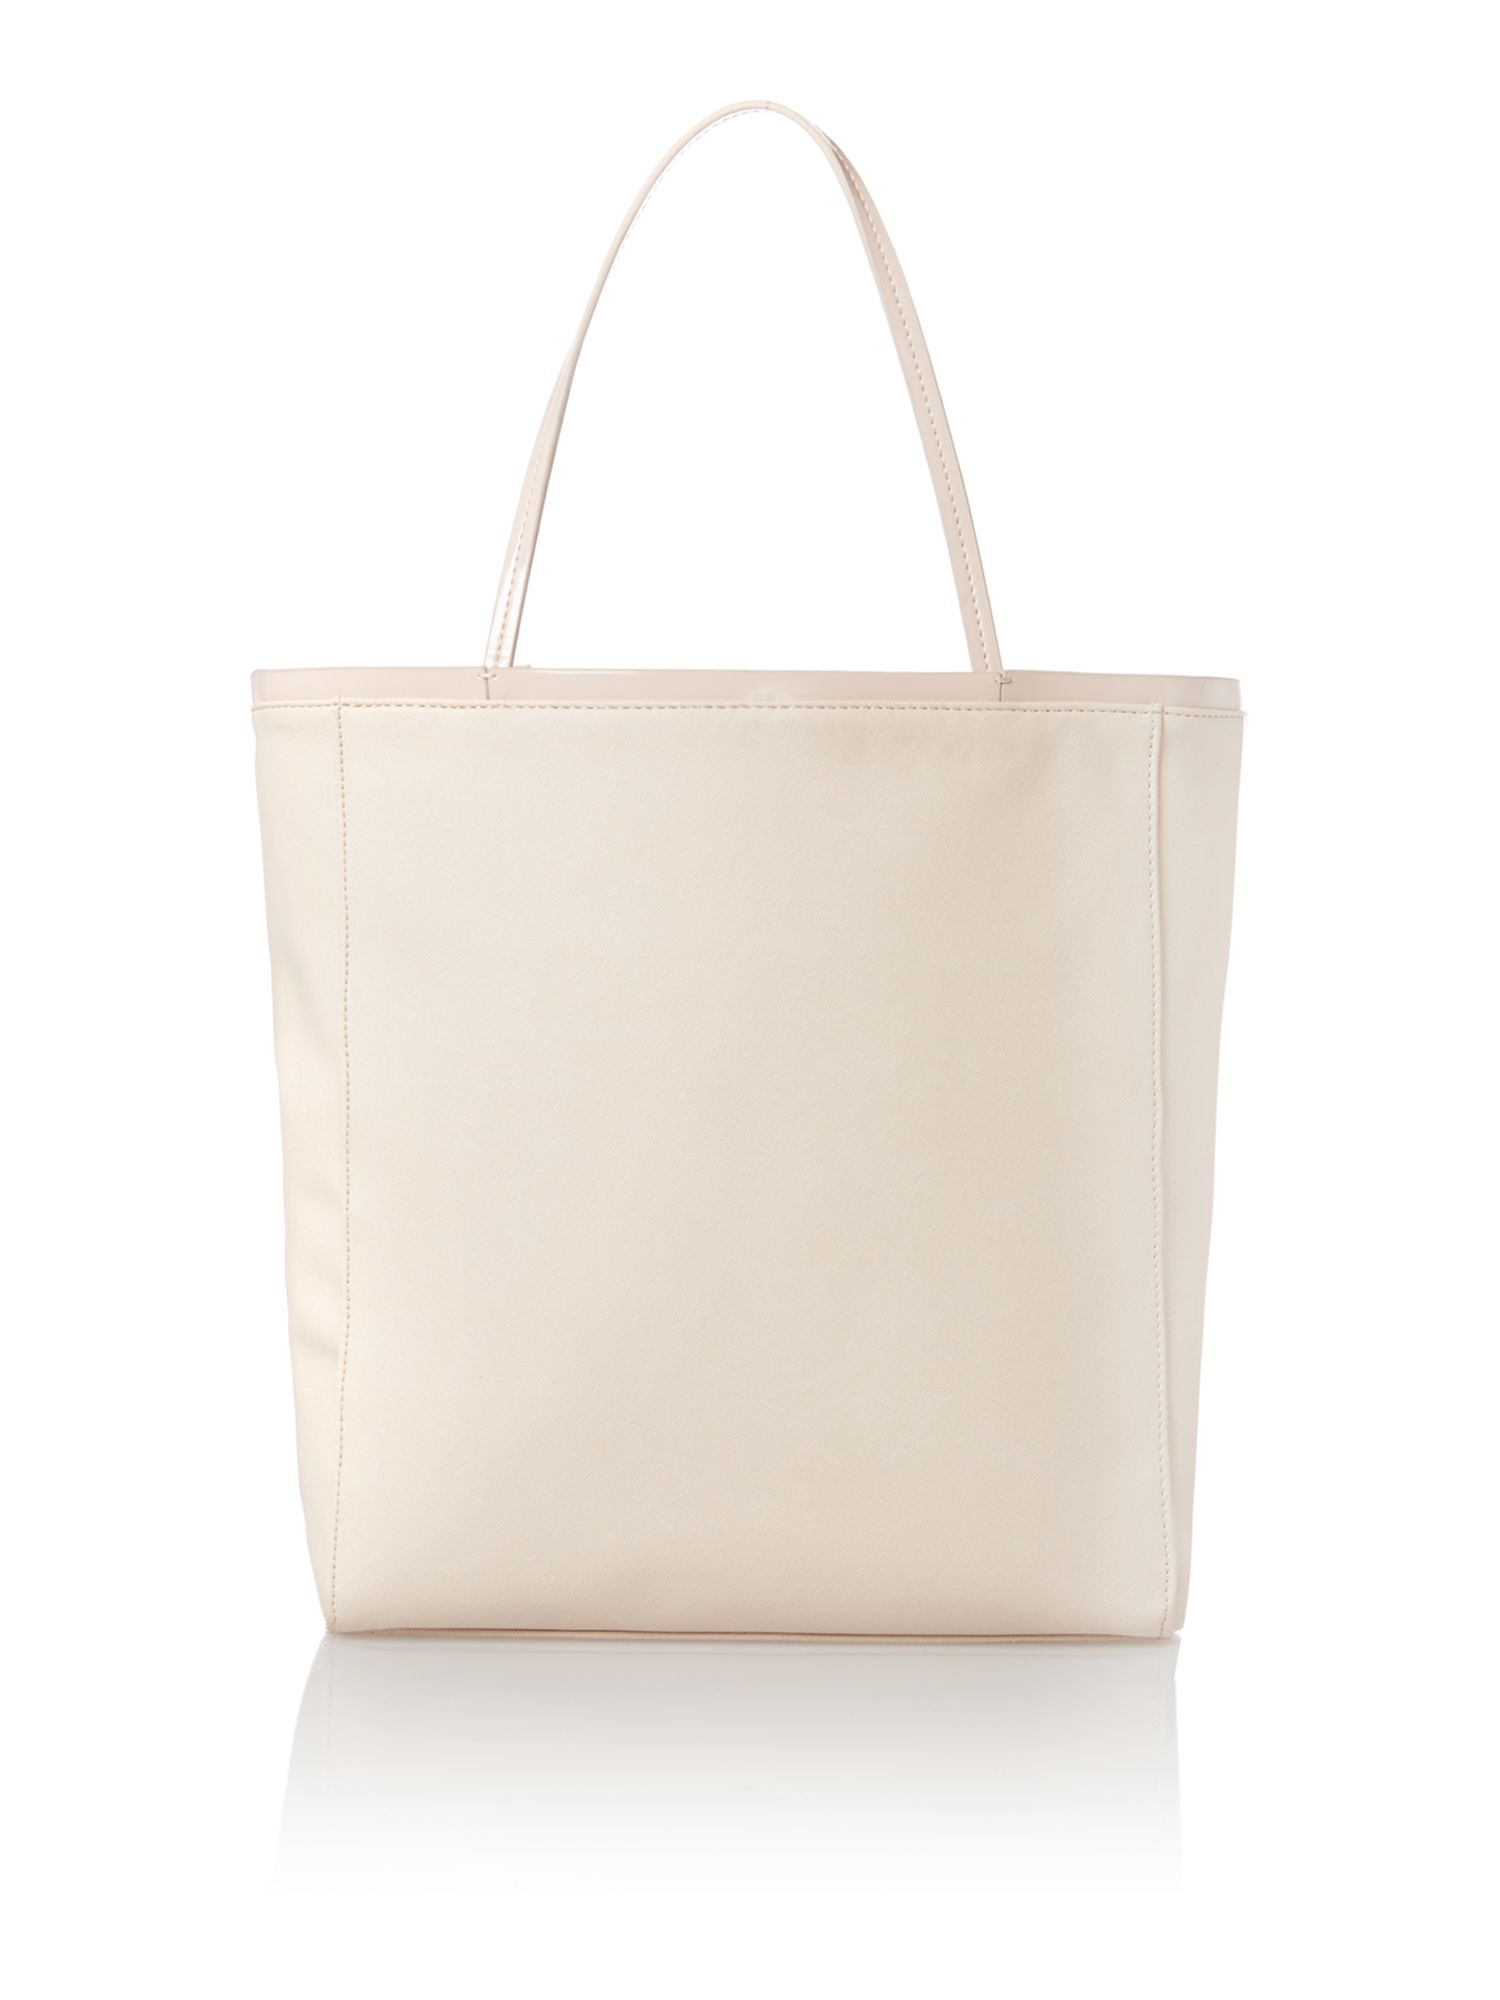 Nude large jewel tote bag